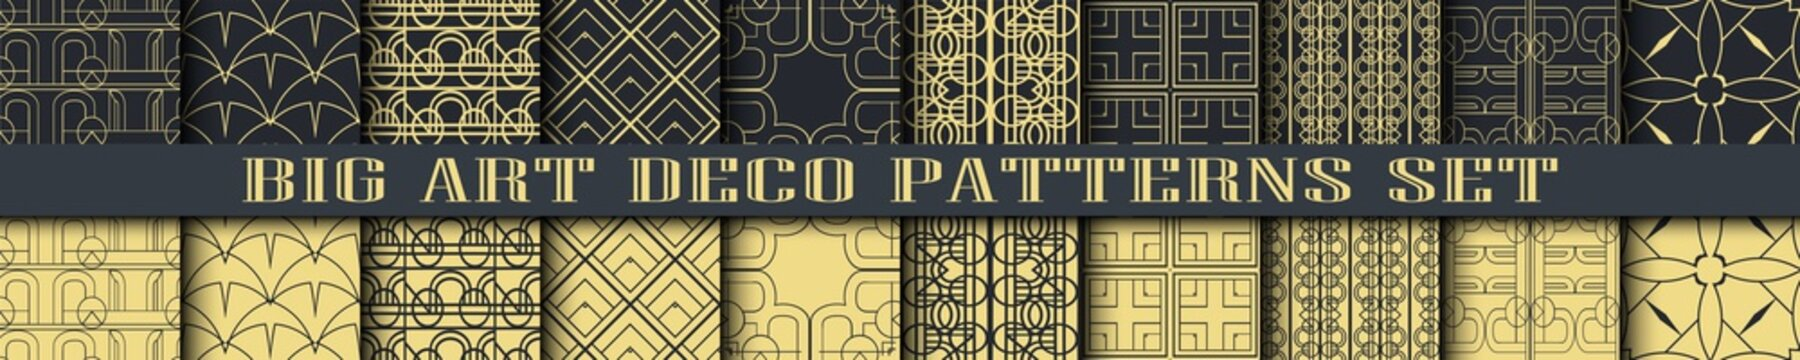 Art Deco Patterns set collection. Golden backgrounds. Fan scales ornaments. Geometric decorative digital papers. Vector line design. 1920-30s motifs. Luxury vintage illustration